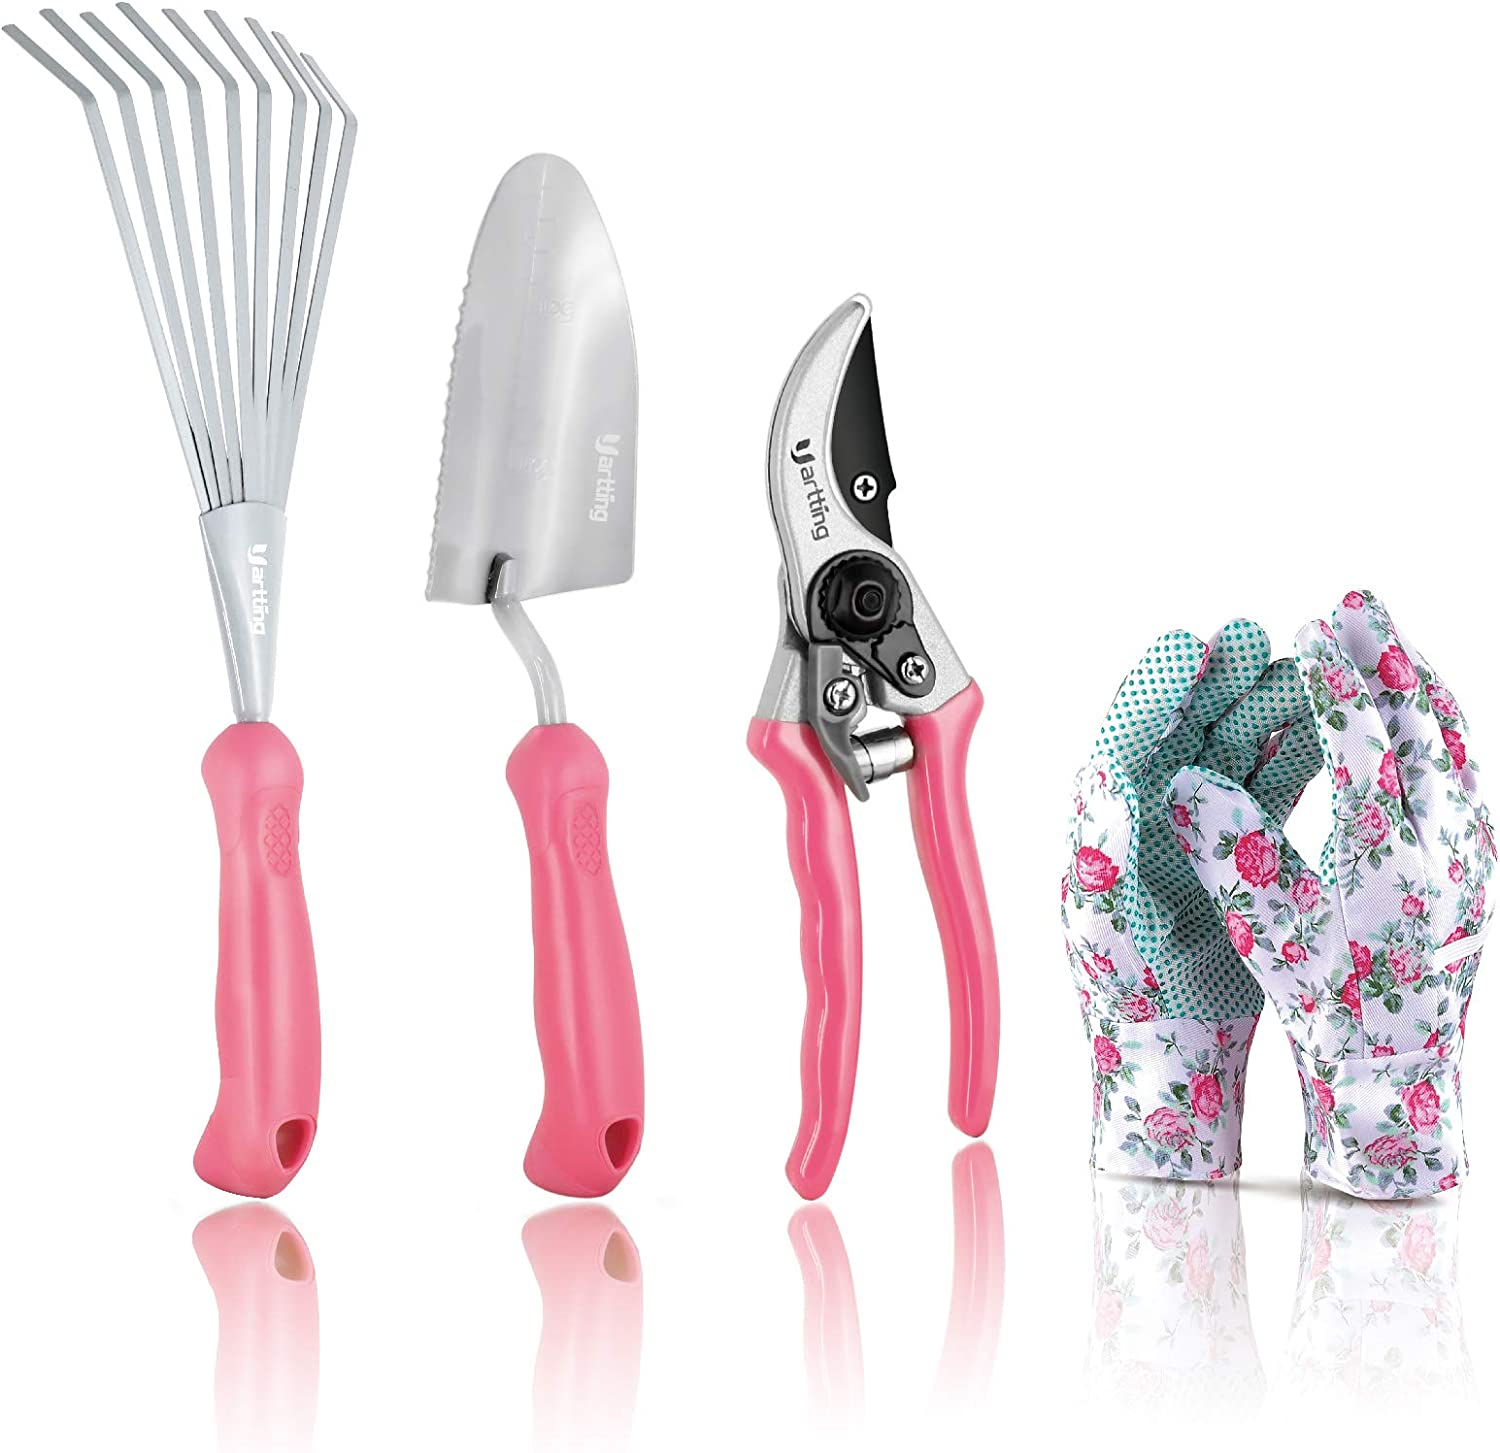 Yartting Garden Tool Set, 4 Piece Durable Gardening Kit, Pruning,Trowel, Hand Rake with Soft Rubberized Non-Slip Ergonomic Handle, Great as a Gift Box (Pink)